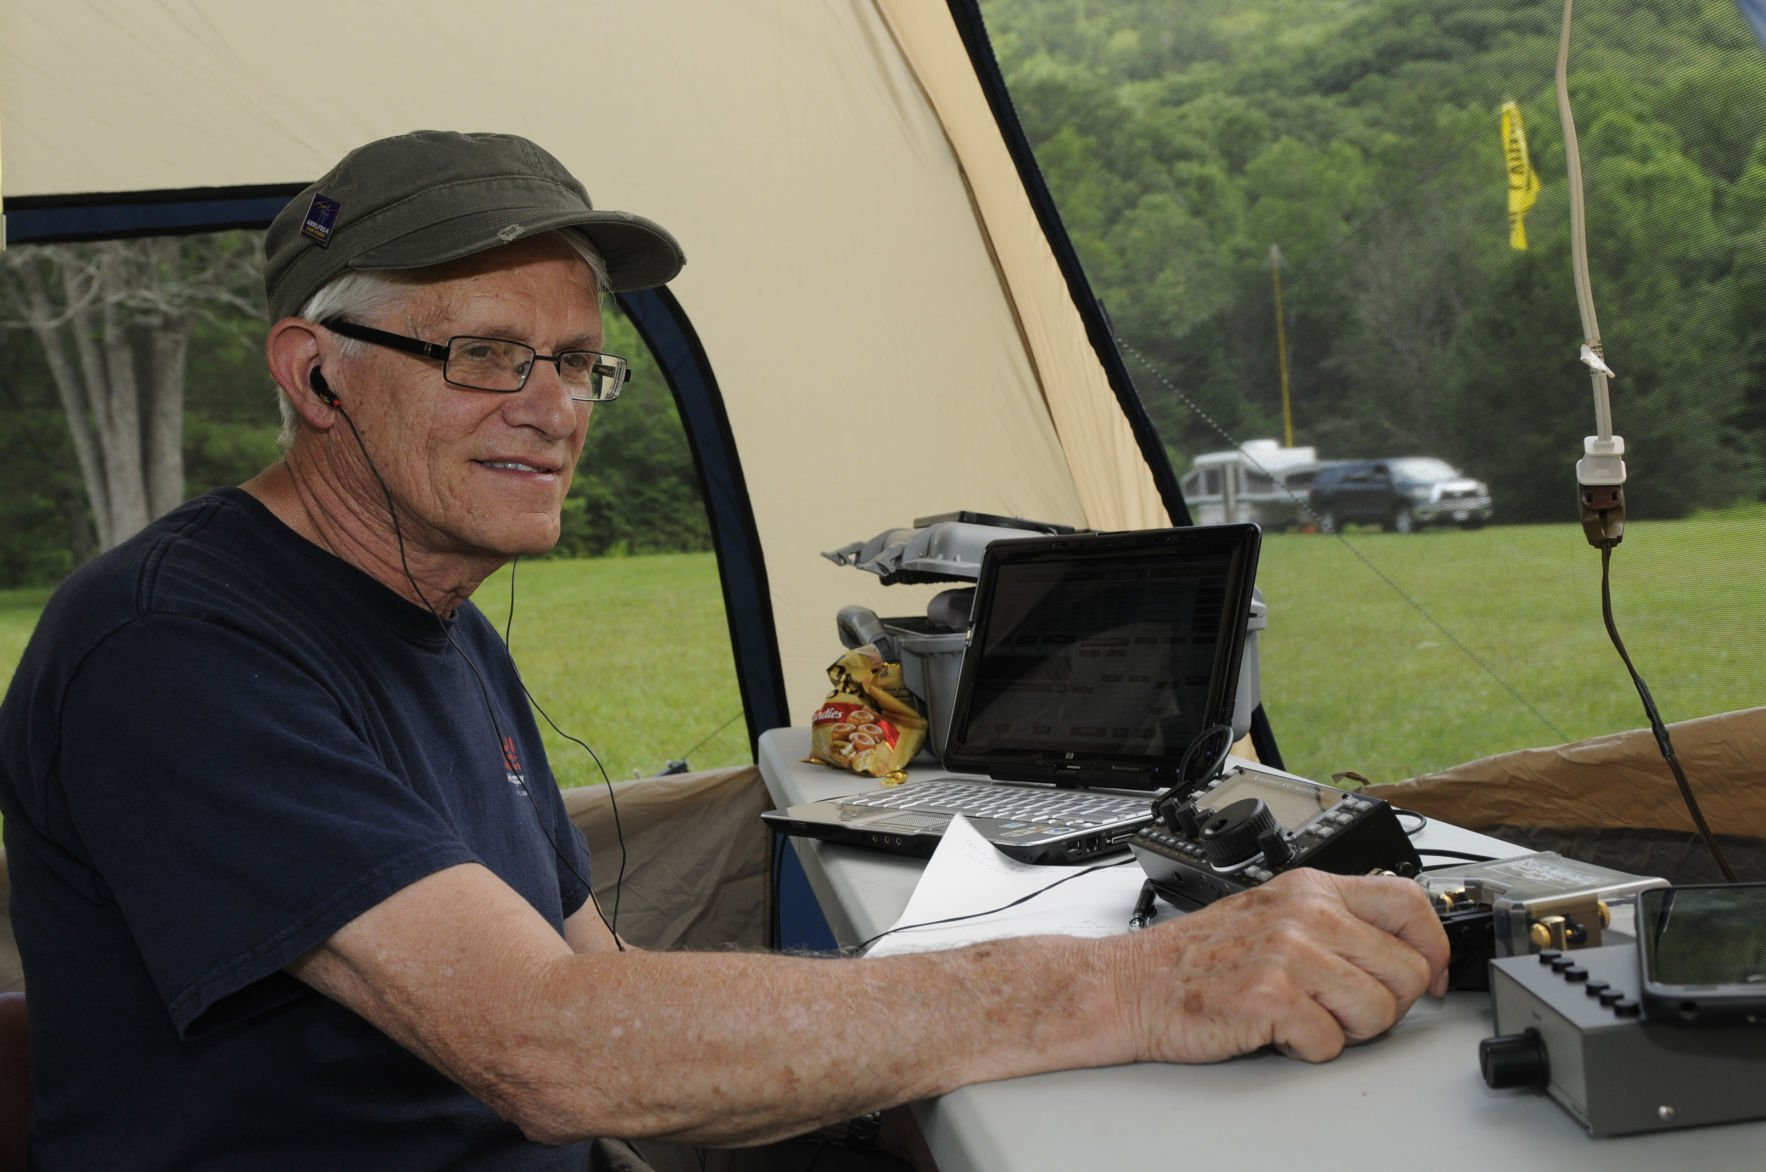 major competition stations ham radio Randall Hash of Bluefield, Va., is a member of the East River Amateur Radio  Club who focuses on Morse code communication.